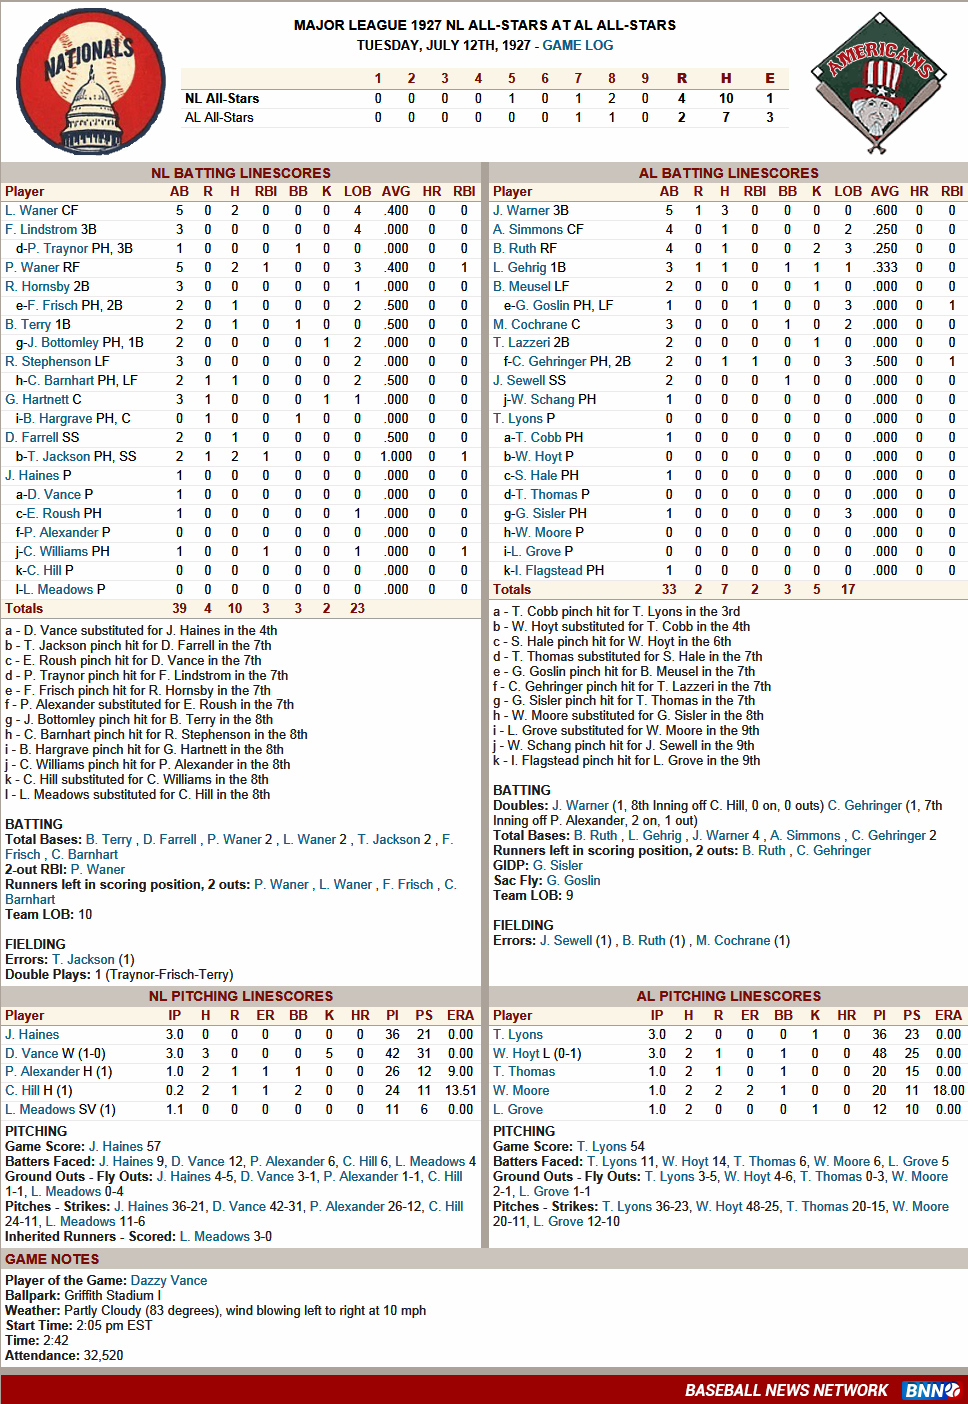 Boxscore for All Star Celebrity game? | Yahoo Answers